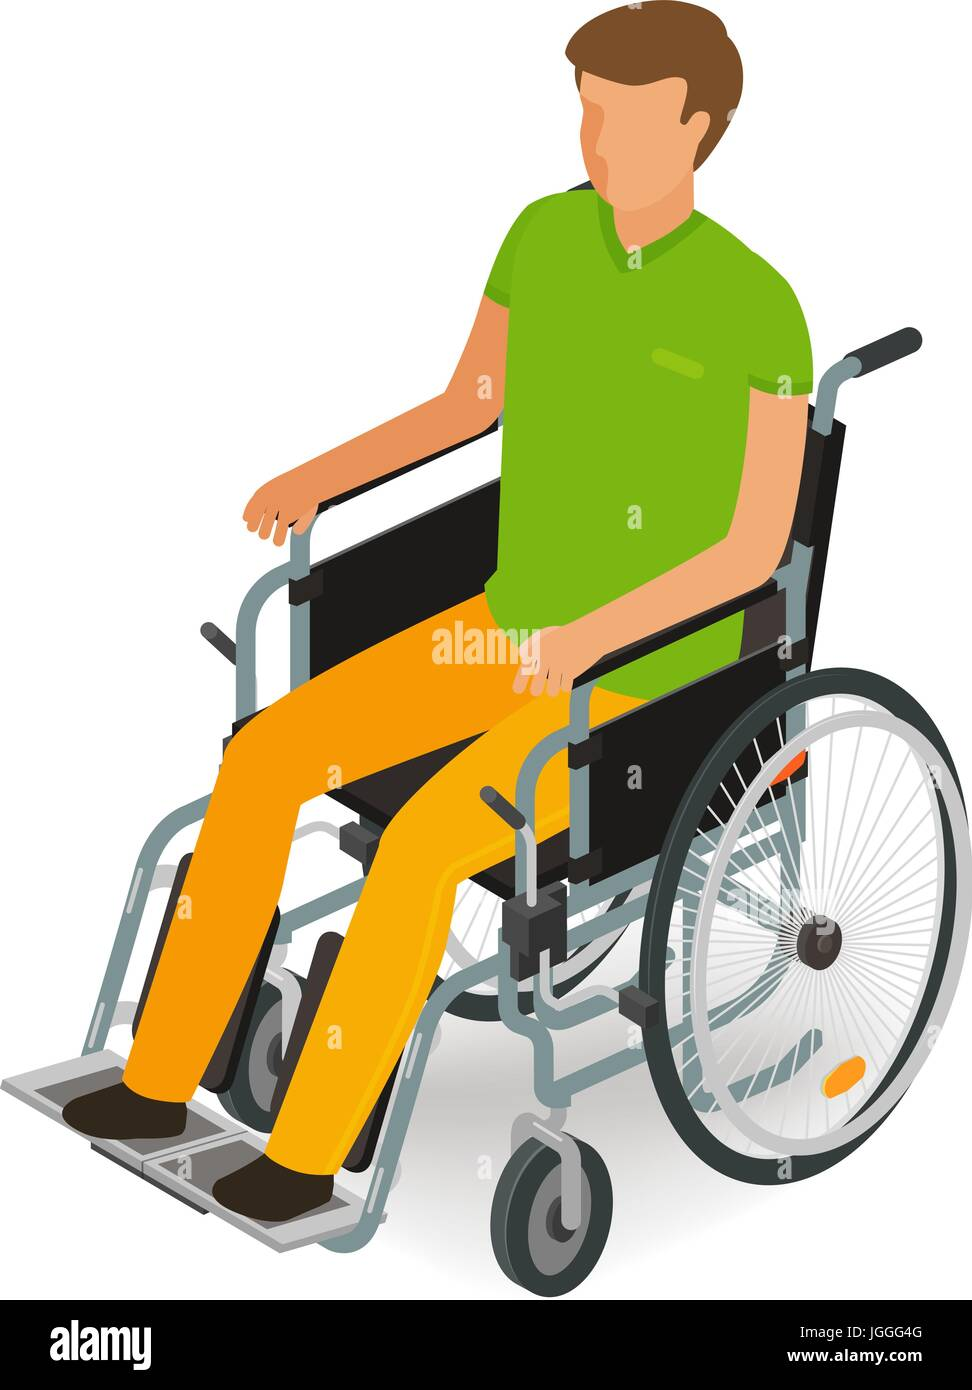 Wheelchair user, disabled, handicapped people icon or symbol Stock Vector Art & Illustration ...